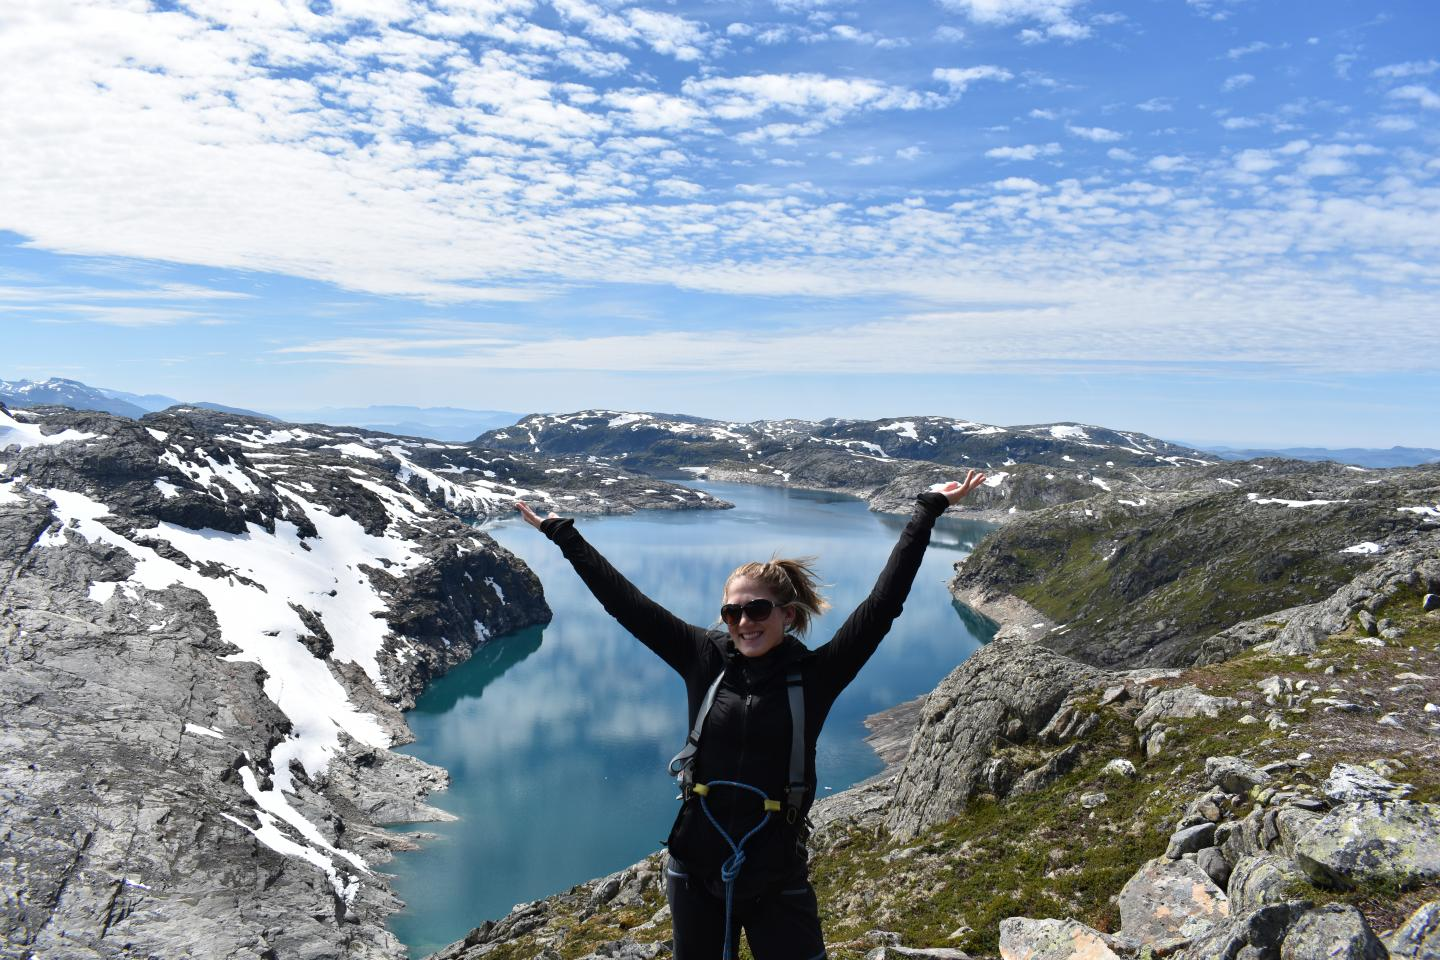 Teenage traveler admires scenic views of Norwegian fjords during summer youth travel program in Scandinavia